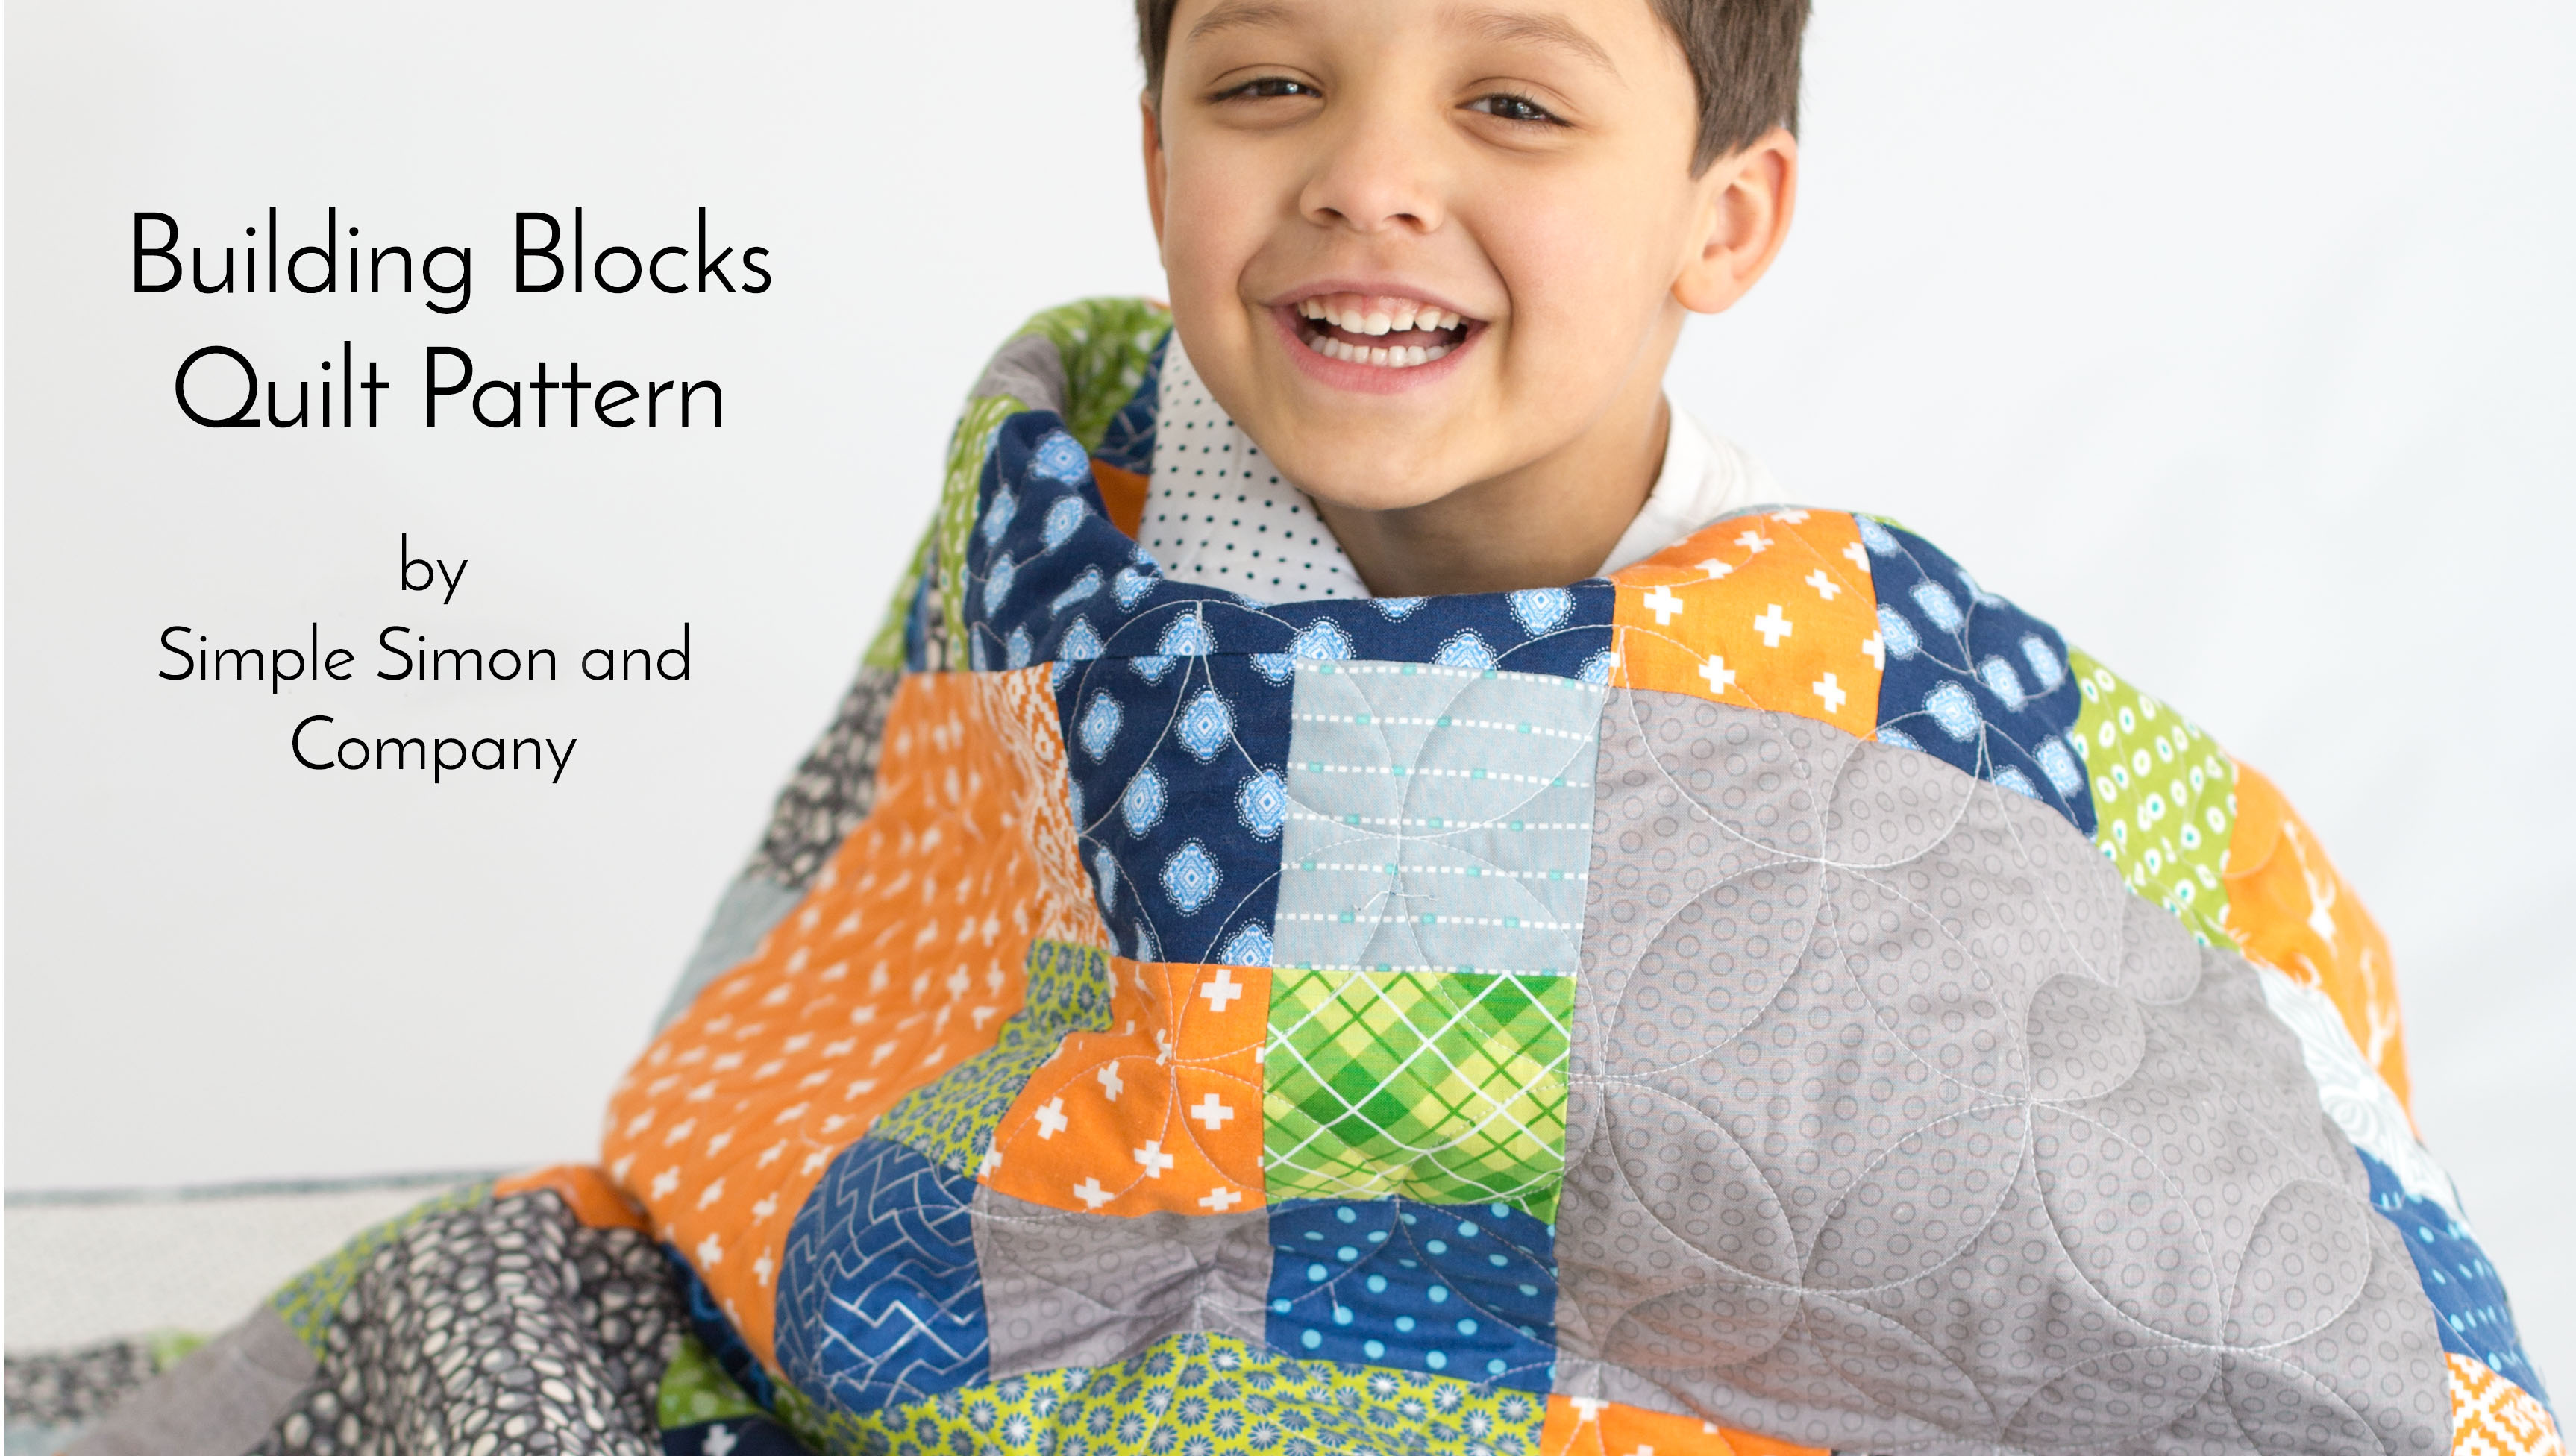 Building Blocks Quilt Pattern